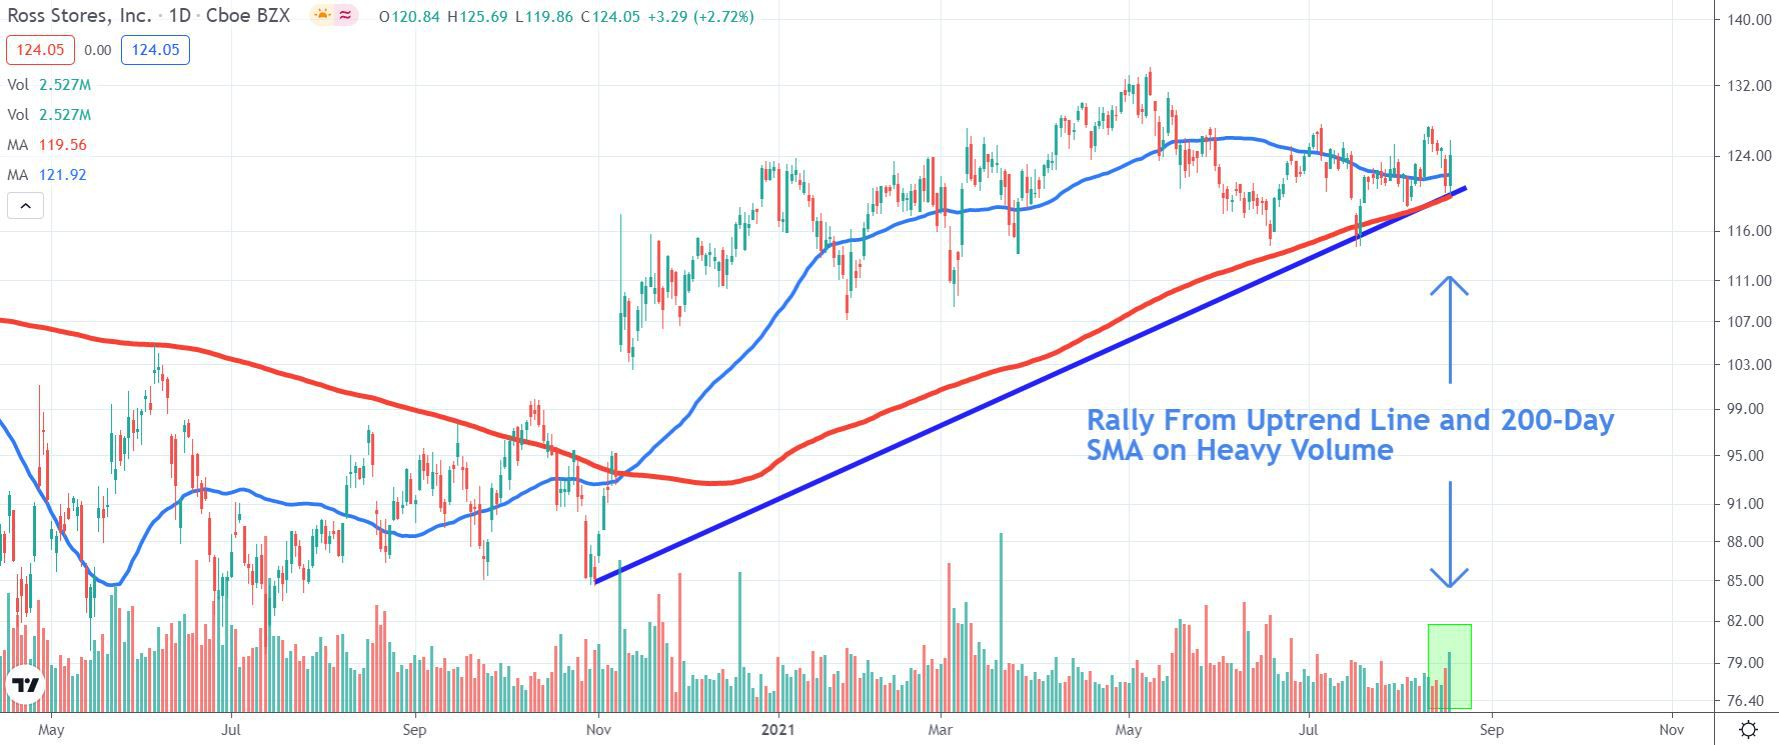 Chart depicting the share price of Ross Stores, Inc. (ROST)